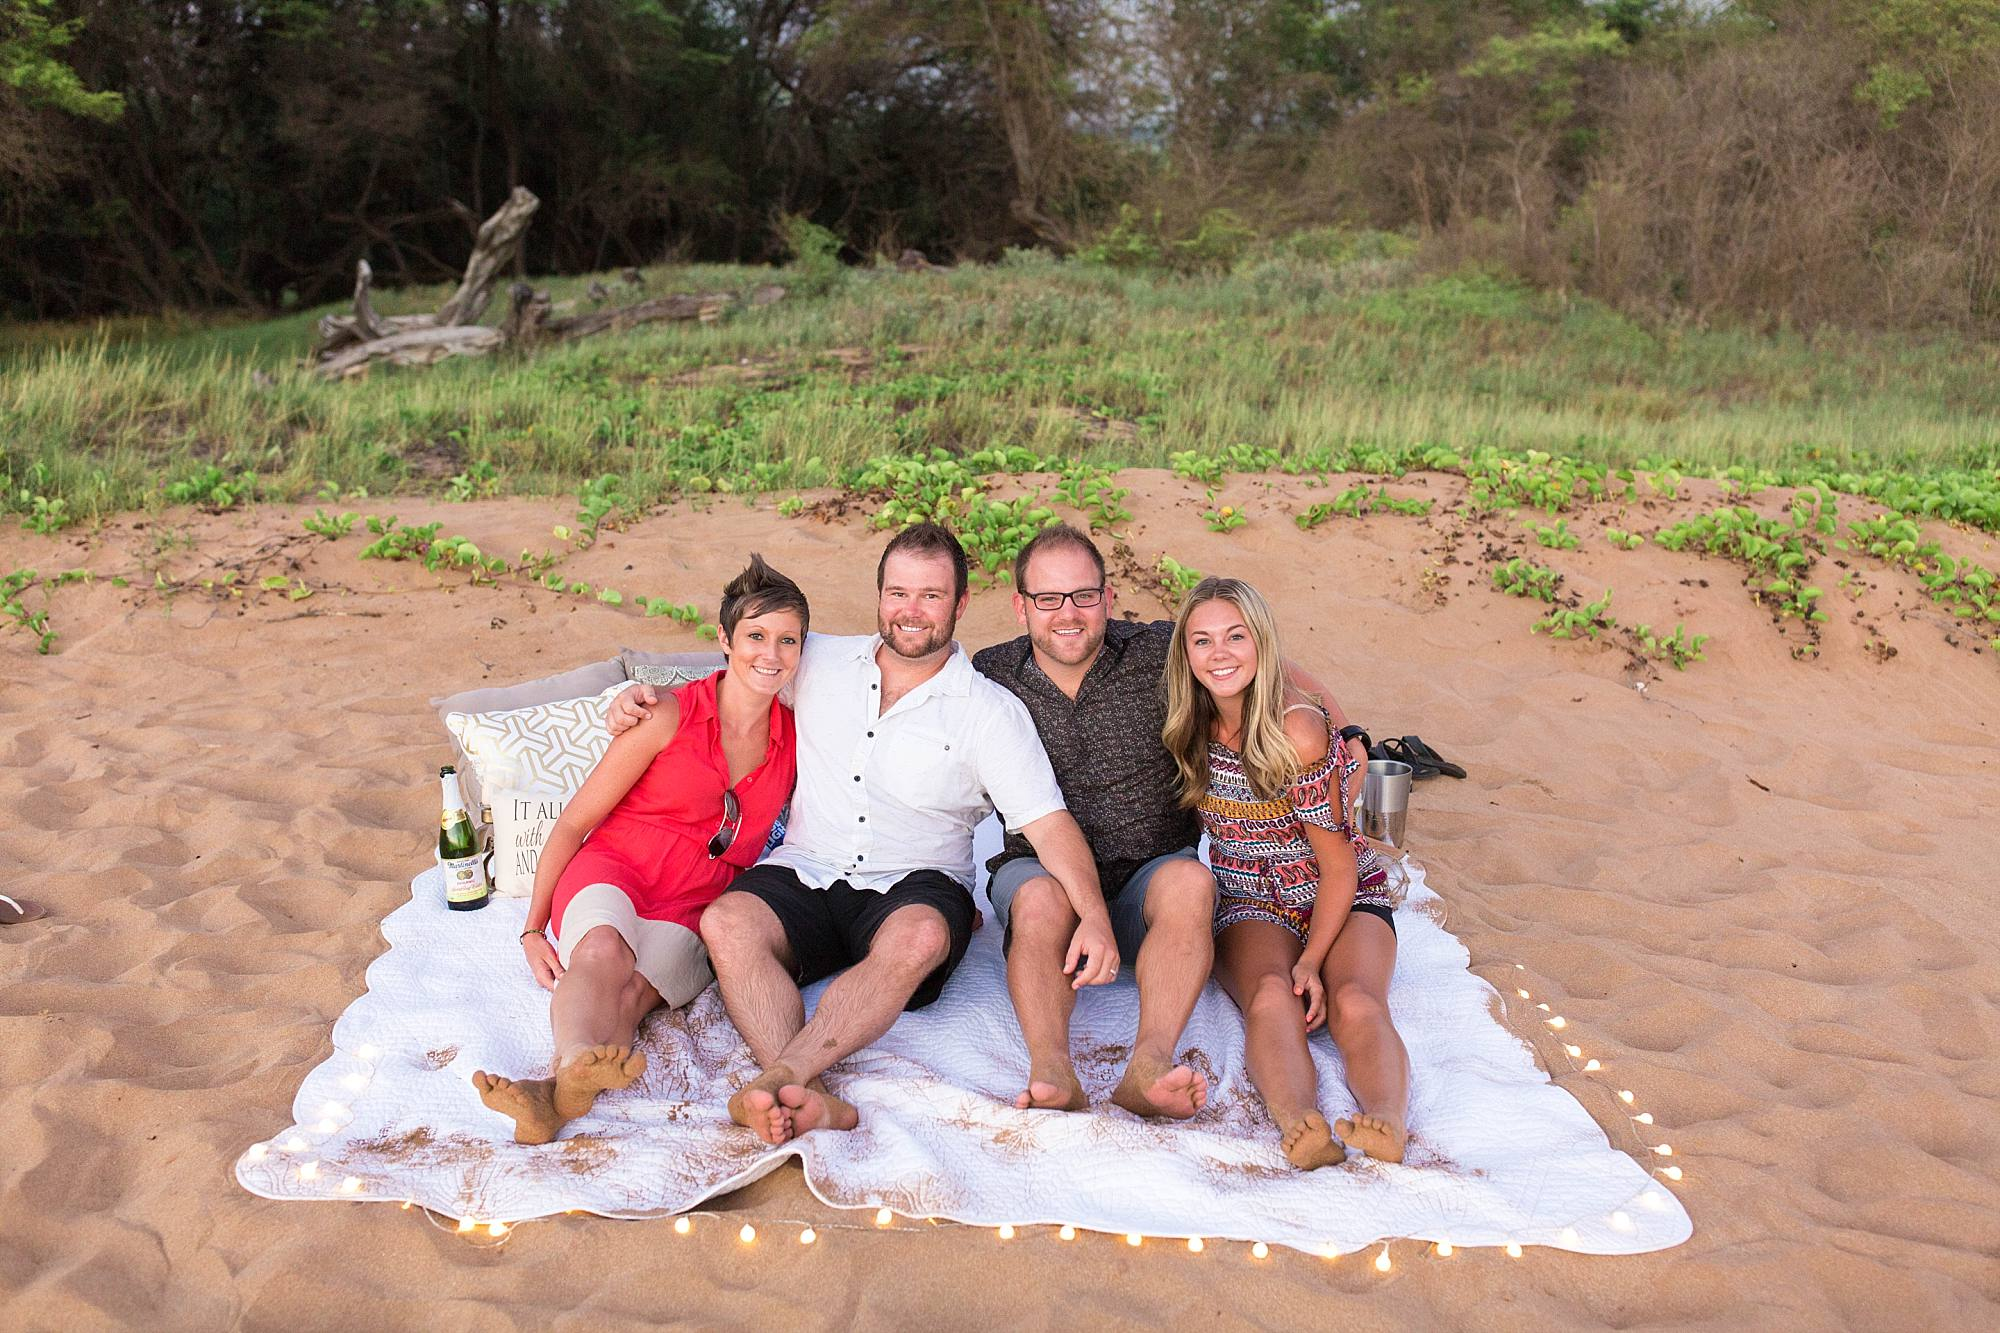 engaged couple and their friends all celebrating the engagement together in the sand